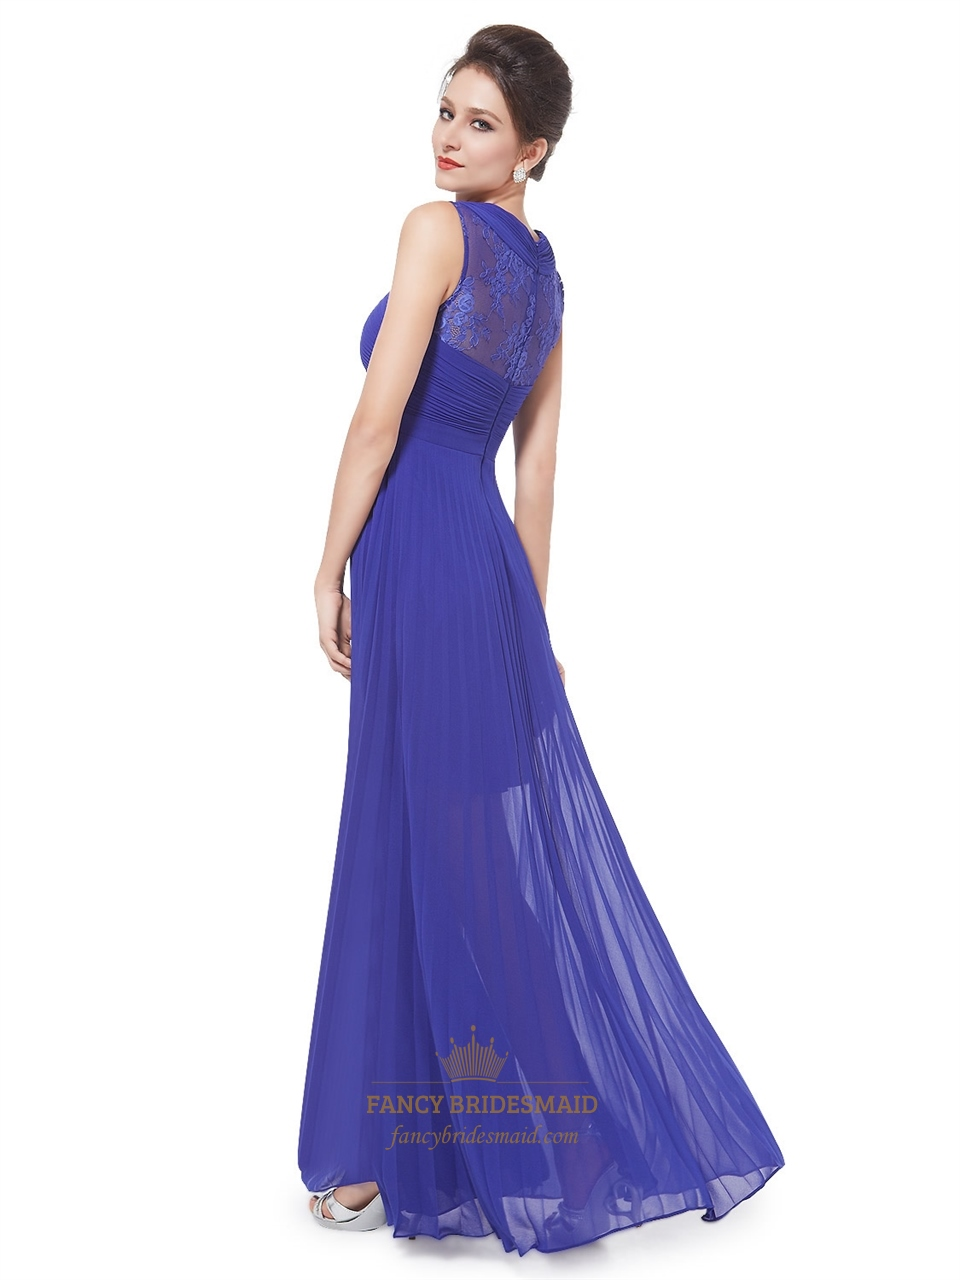 Royal Blue Pleated Maxi DressWomens Elegant Sheer Lace Long Party Dress